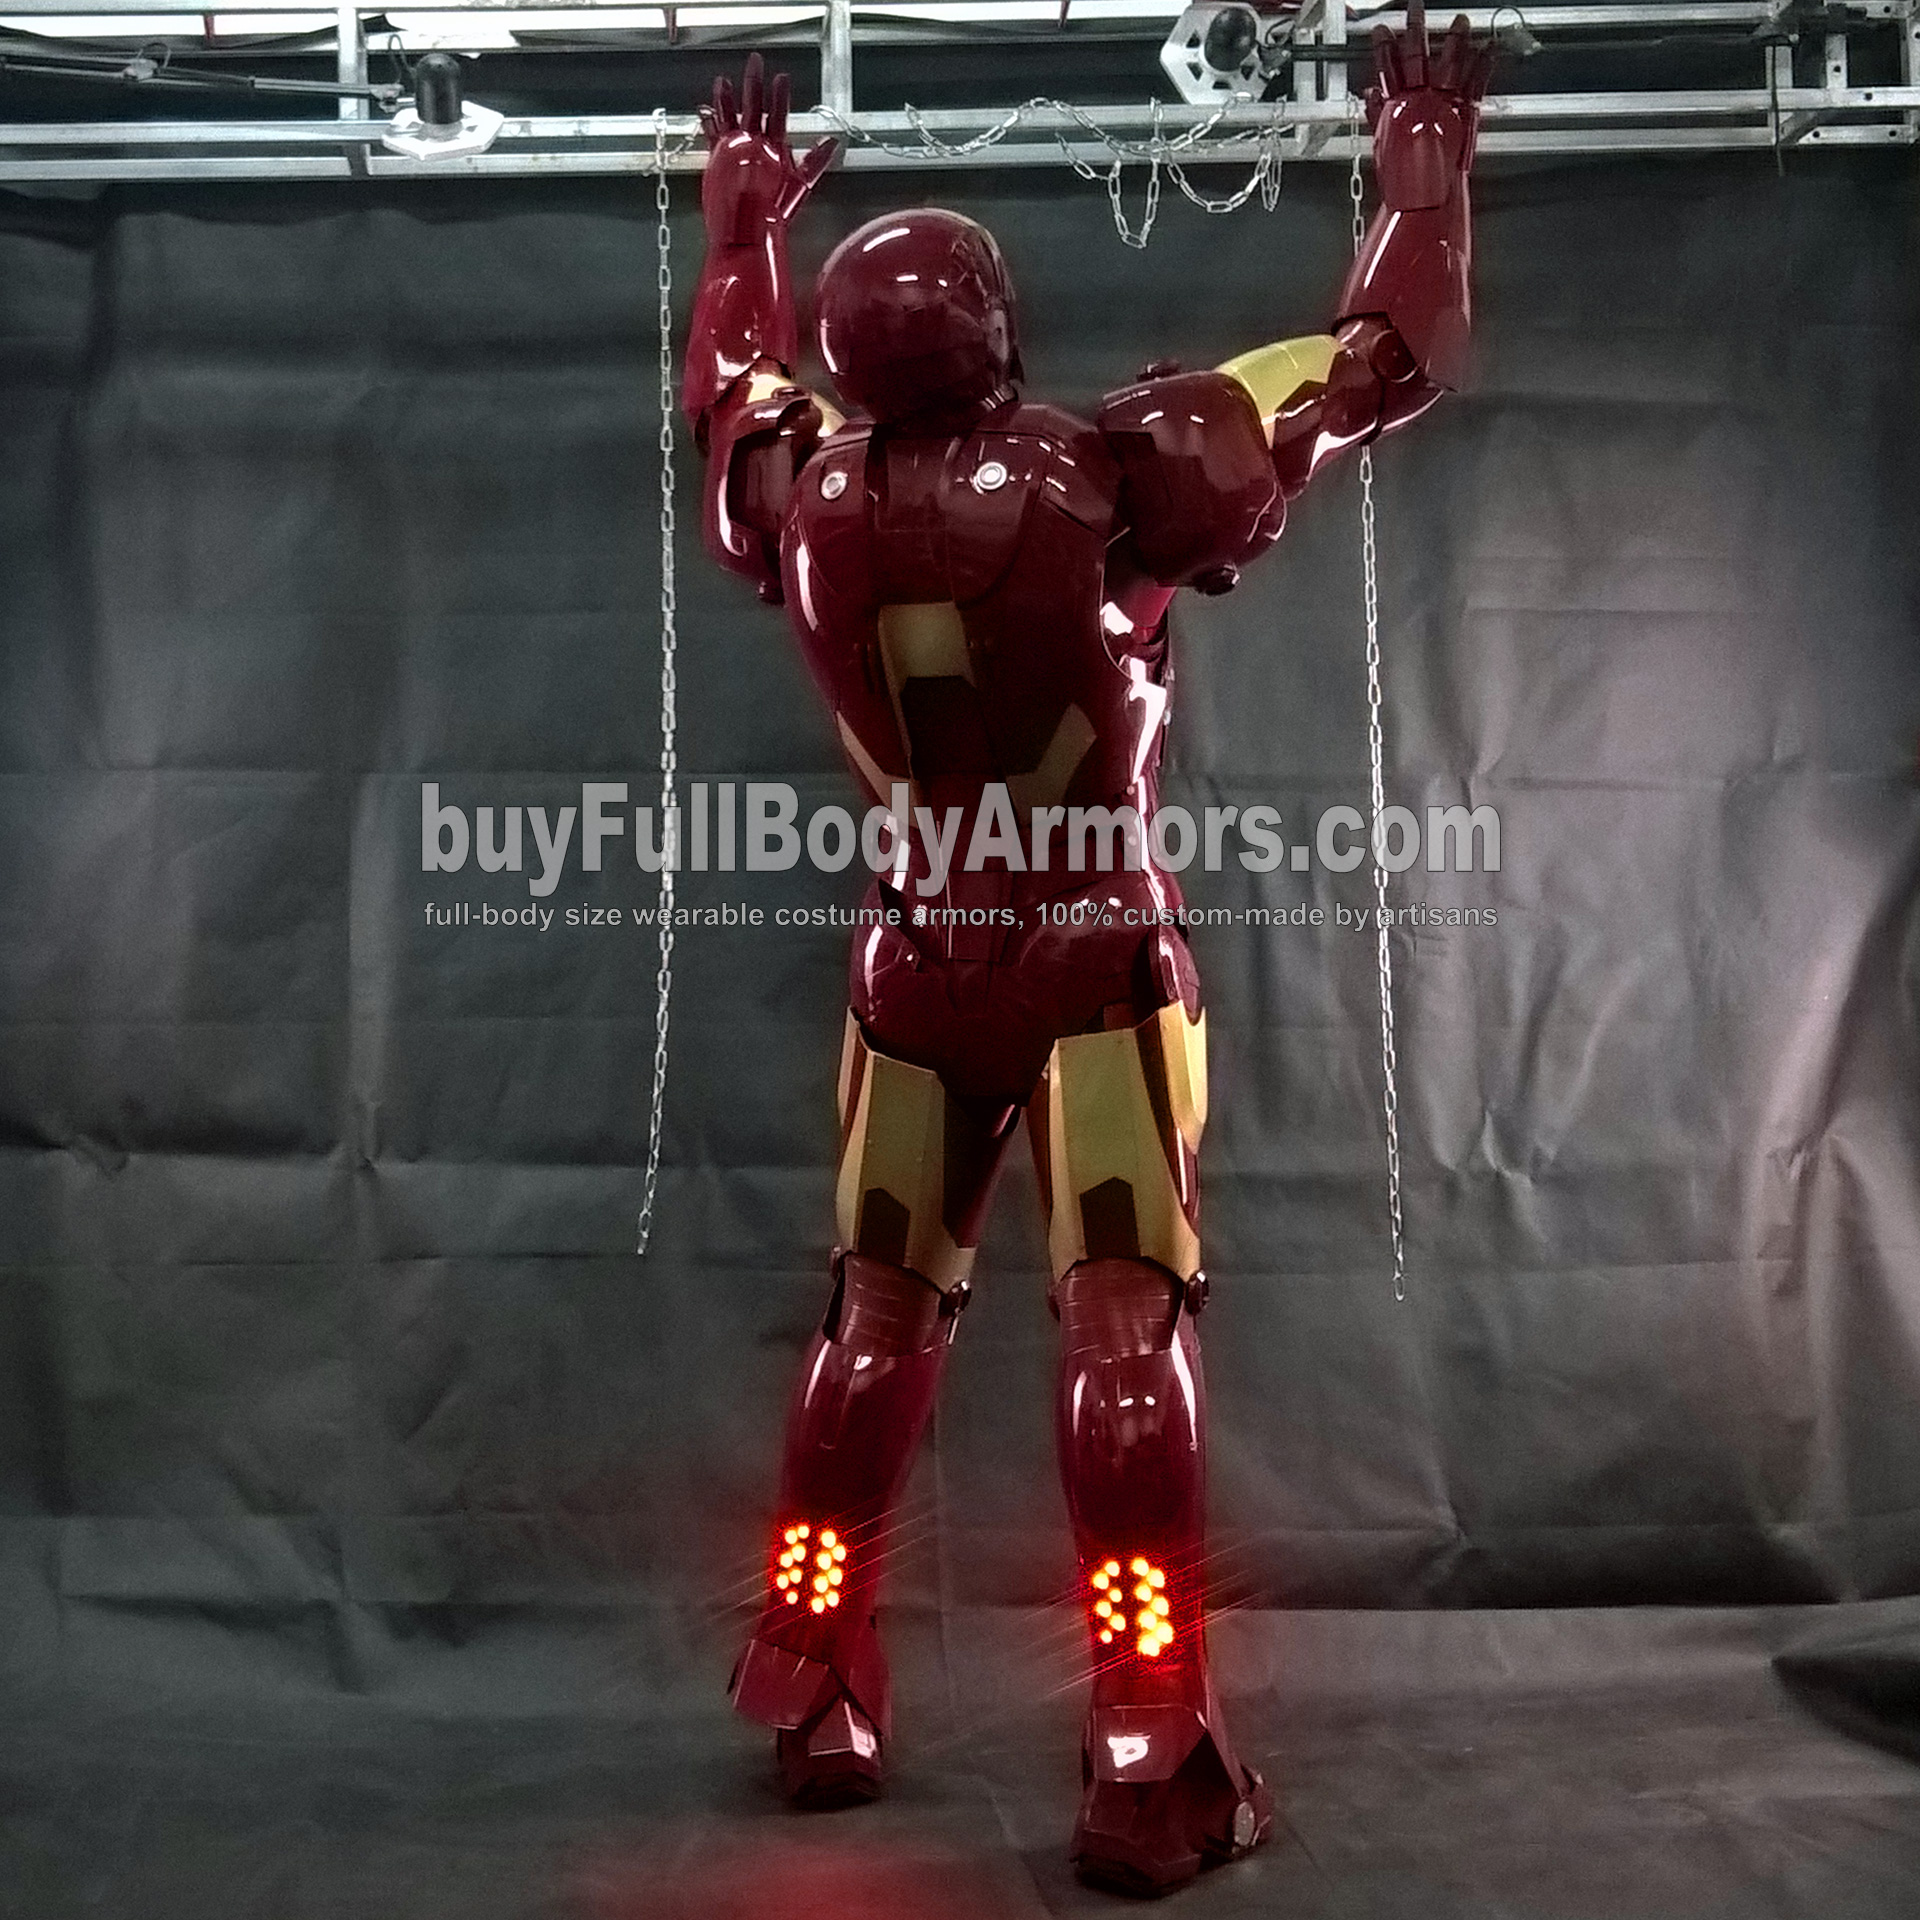 Wearing the Wearable Iron Man Suit Mark 3 III Armor Costume - Photos 1